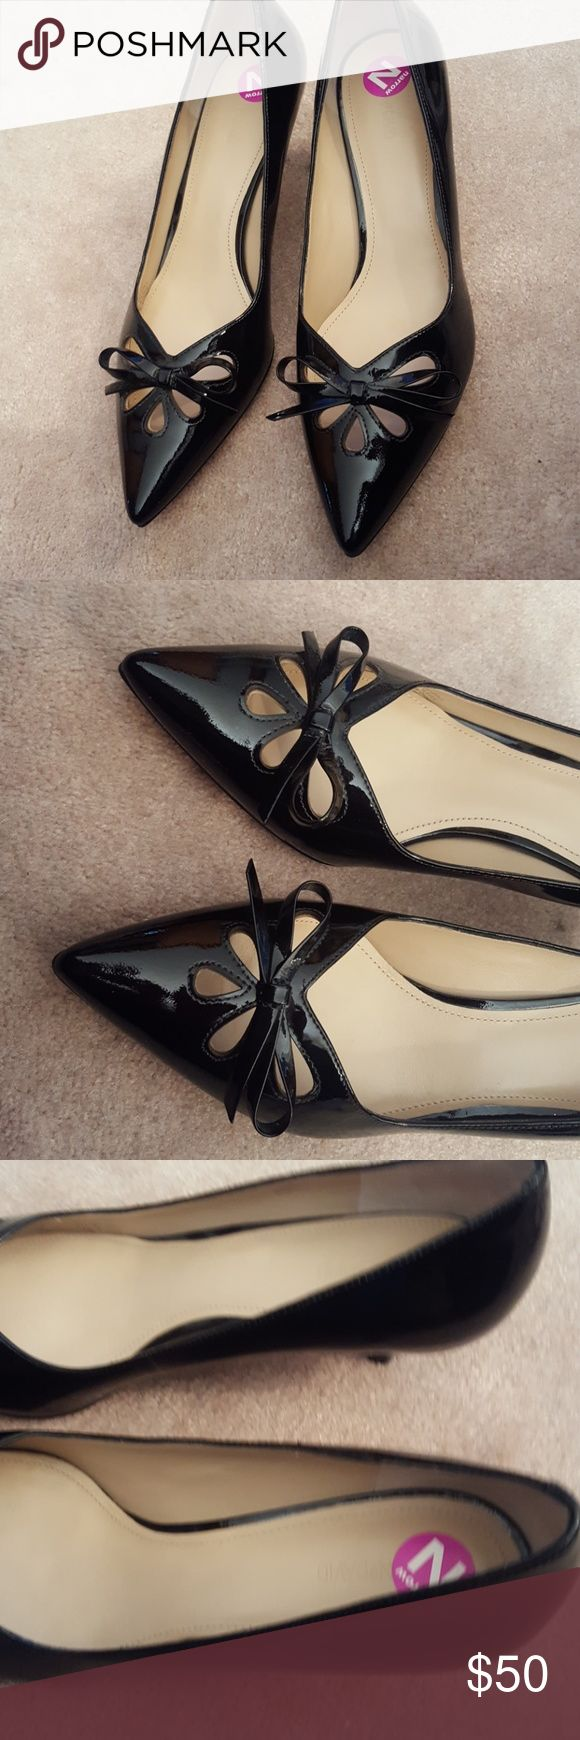 "Never Worn Joan & David  Paten Leather Size 9.5N Joan & David Dagardner Shoes Size 9.5 Narrow Black patent leather  2"" kitten heels Open flower design with bow  New with all tags but no original box Joan & David Shoes Heels"